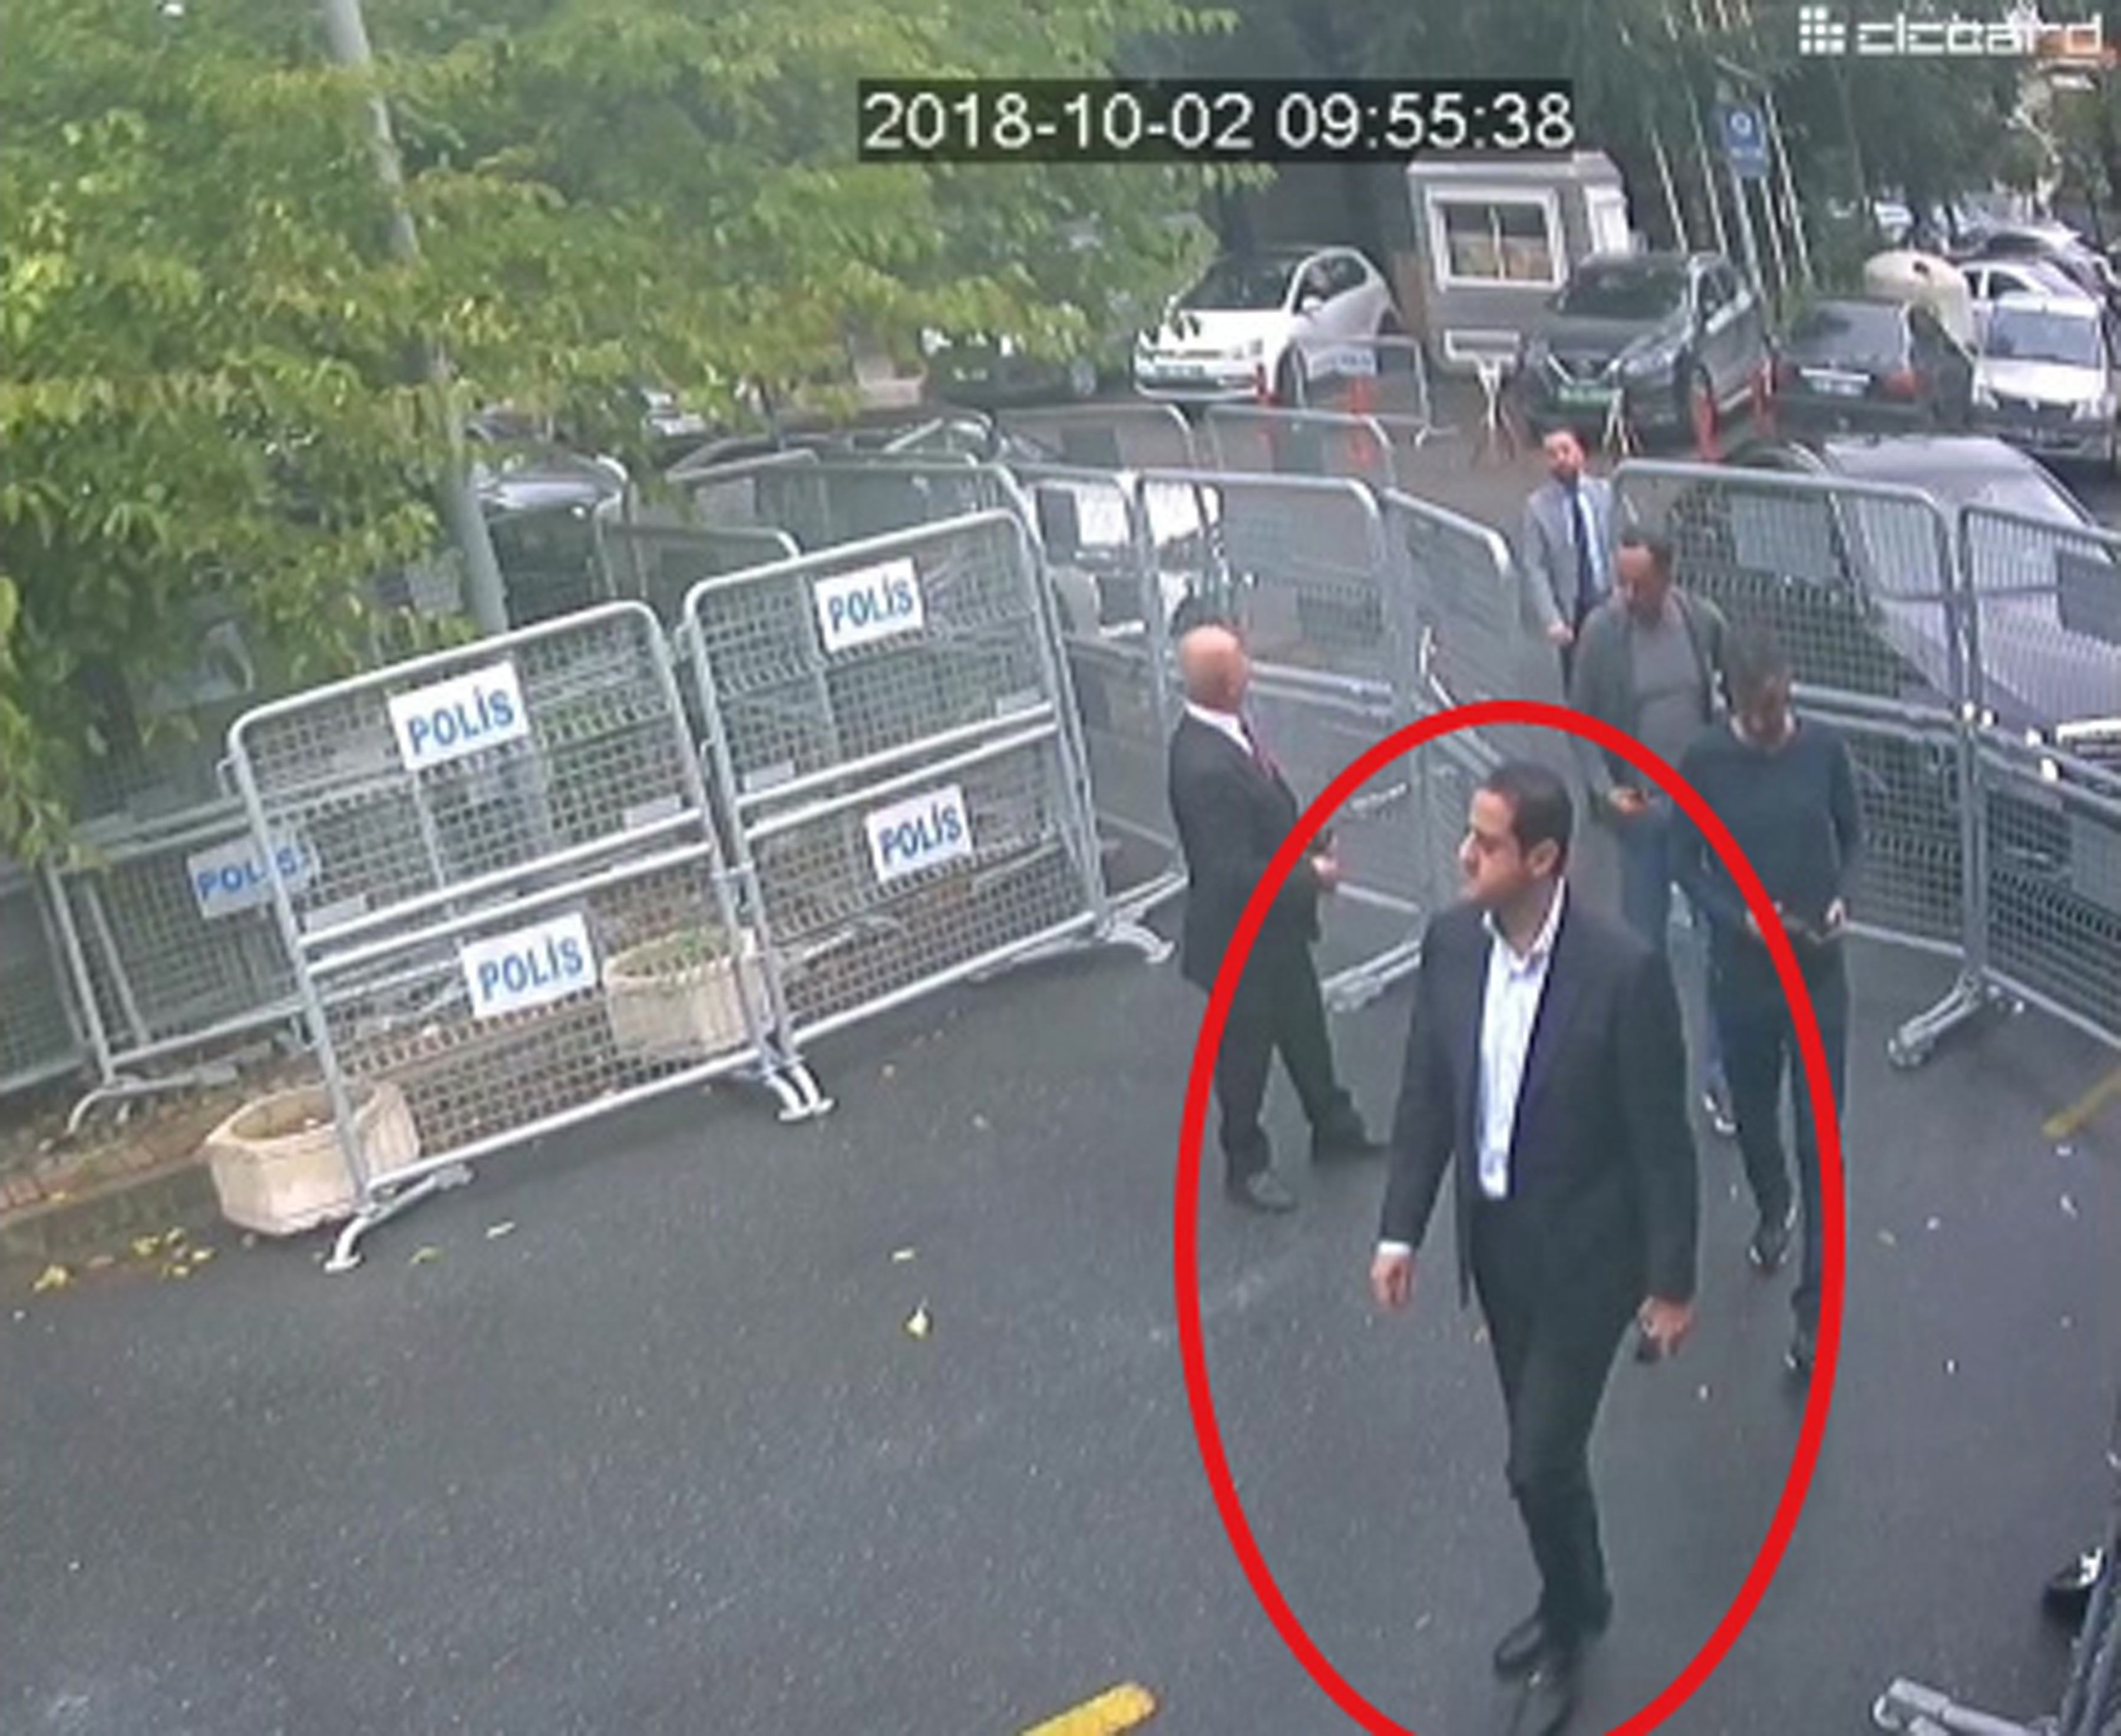 In a frame from surveillance camera footage taken Oct. 2, 2018, and published Oct. 18, 2018, by Turkish newspaper Sabah, a man identified by Turkish officials as Maher Abdulaziz Mutreb, walks toward the Saudi consulate in Istanbul before journalist J...